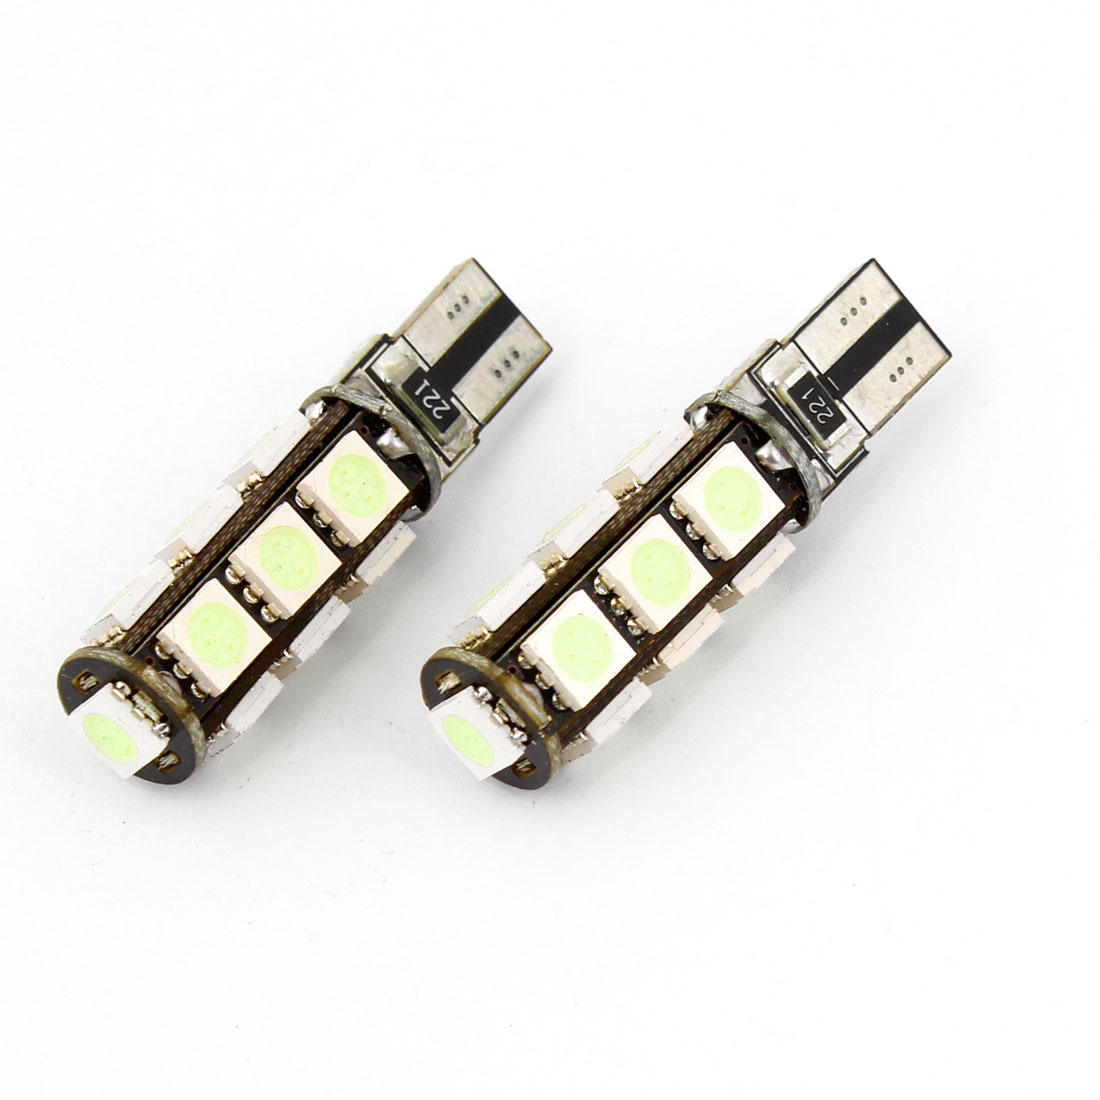 2PCS T10 Ice Blue 13 LED 5050 SMD No Error Dash Turn Signal Light Bulb for Car